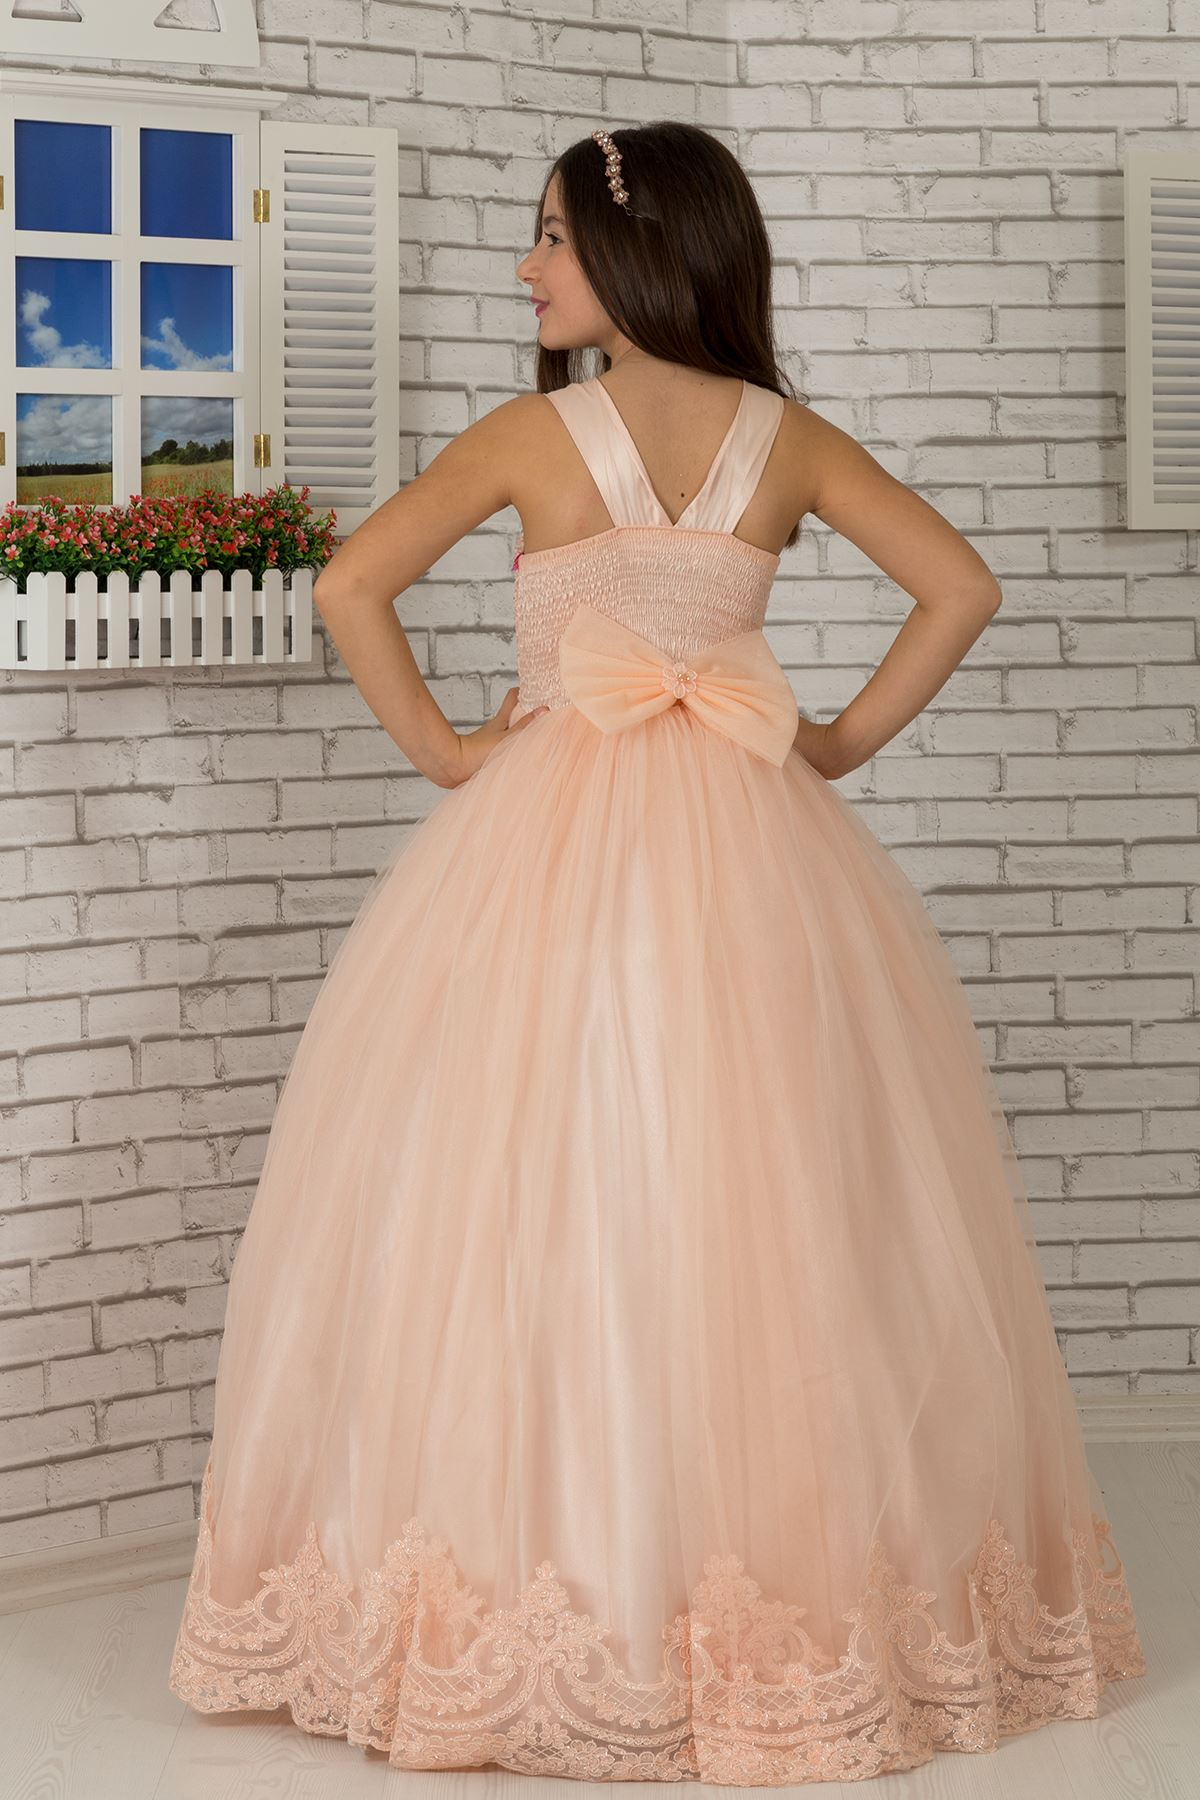 Special sequin body, embroidered appliqué, hemline detailed Fluffy Girl's Evening Dress 600 Salmon